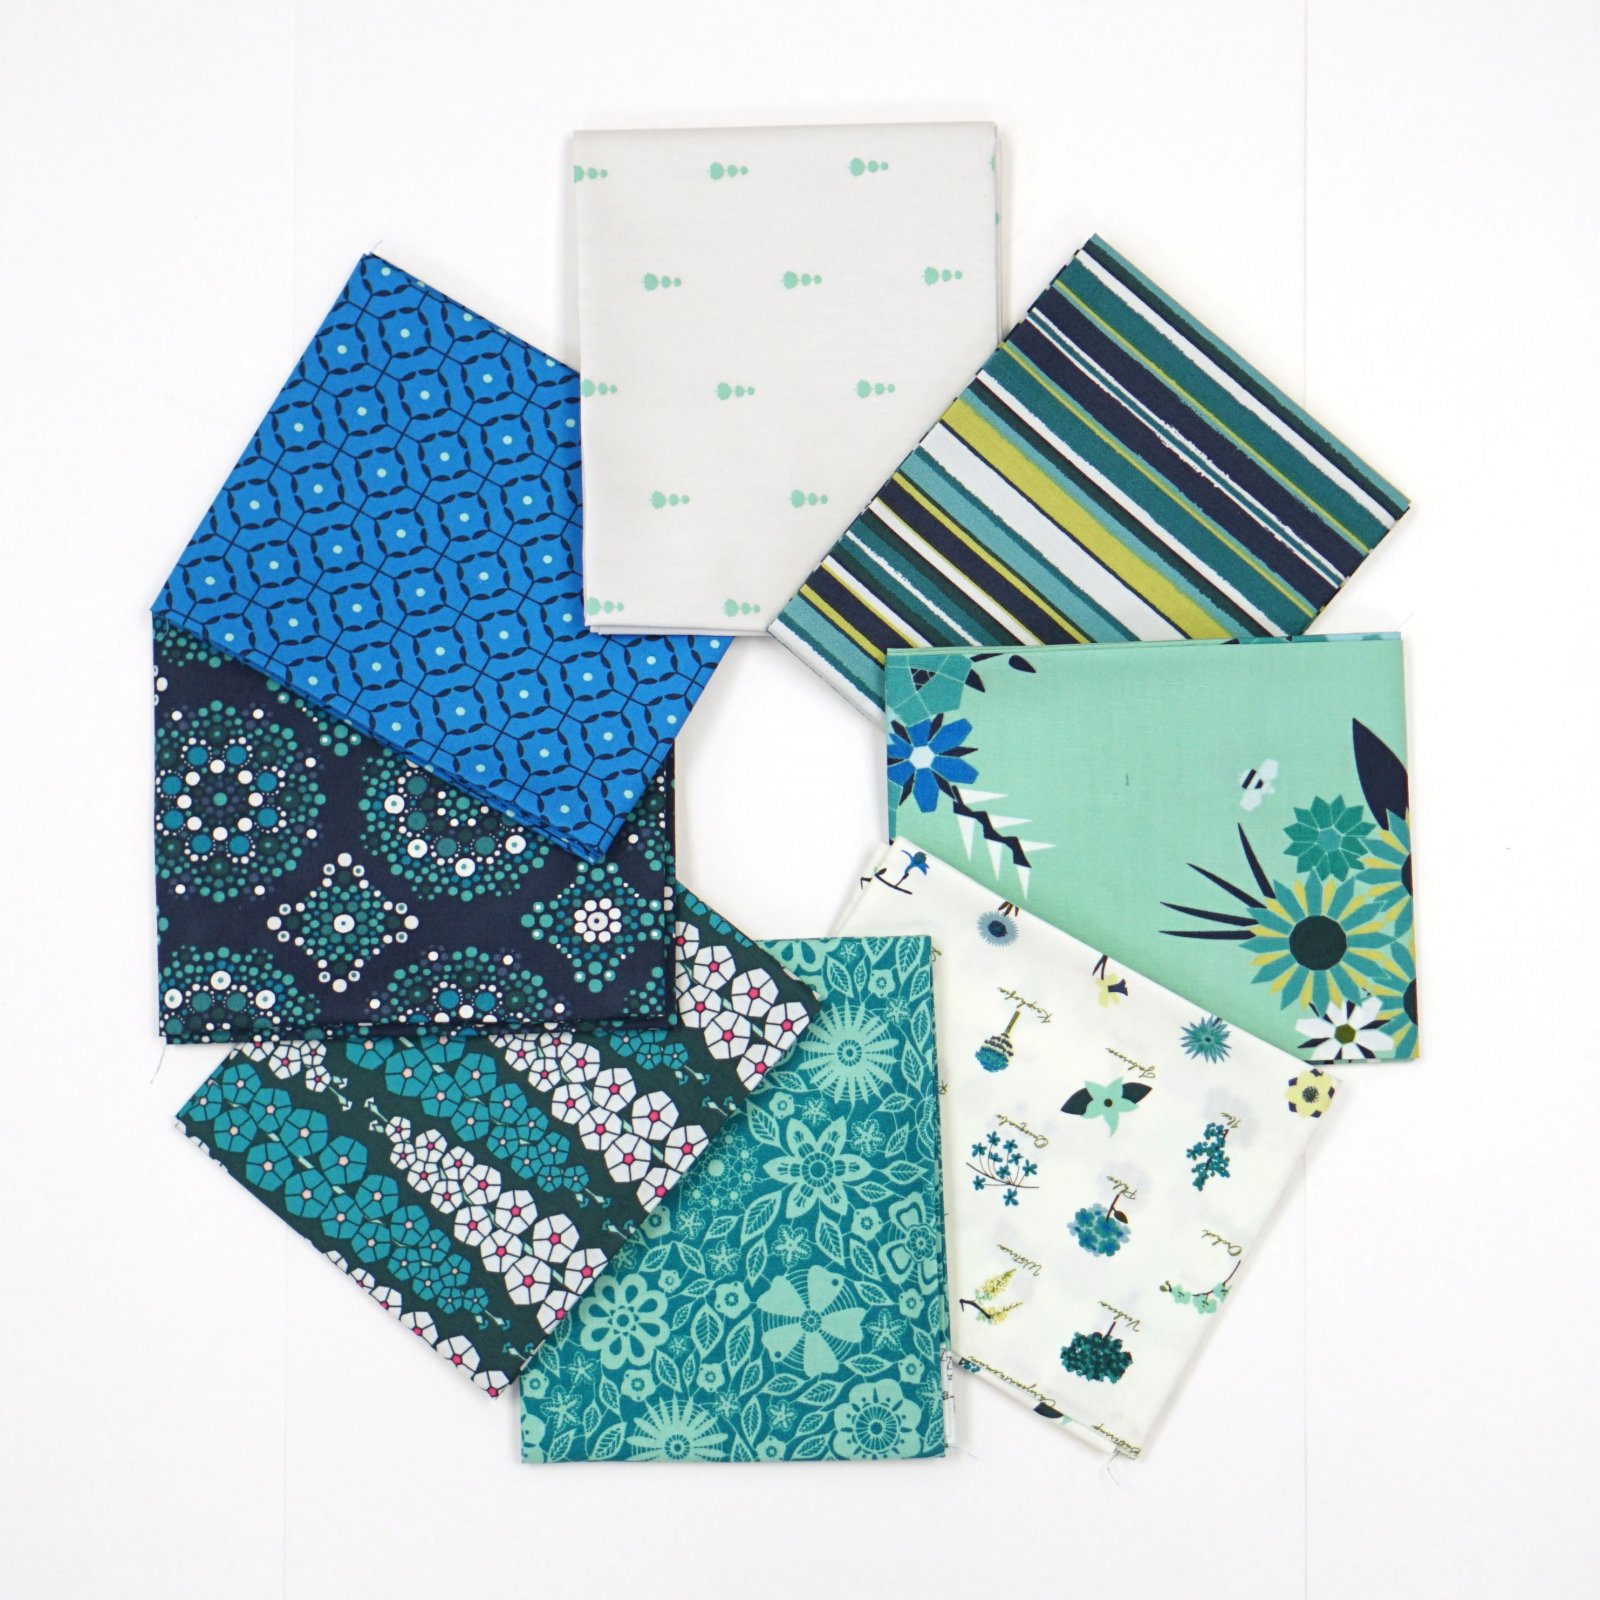 Loved to Pieces - Crosscut Sewing Custom 8 Piece Fat Quarter Box